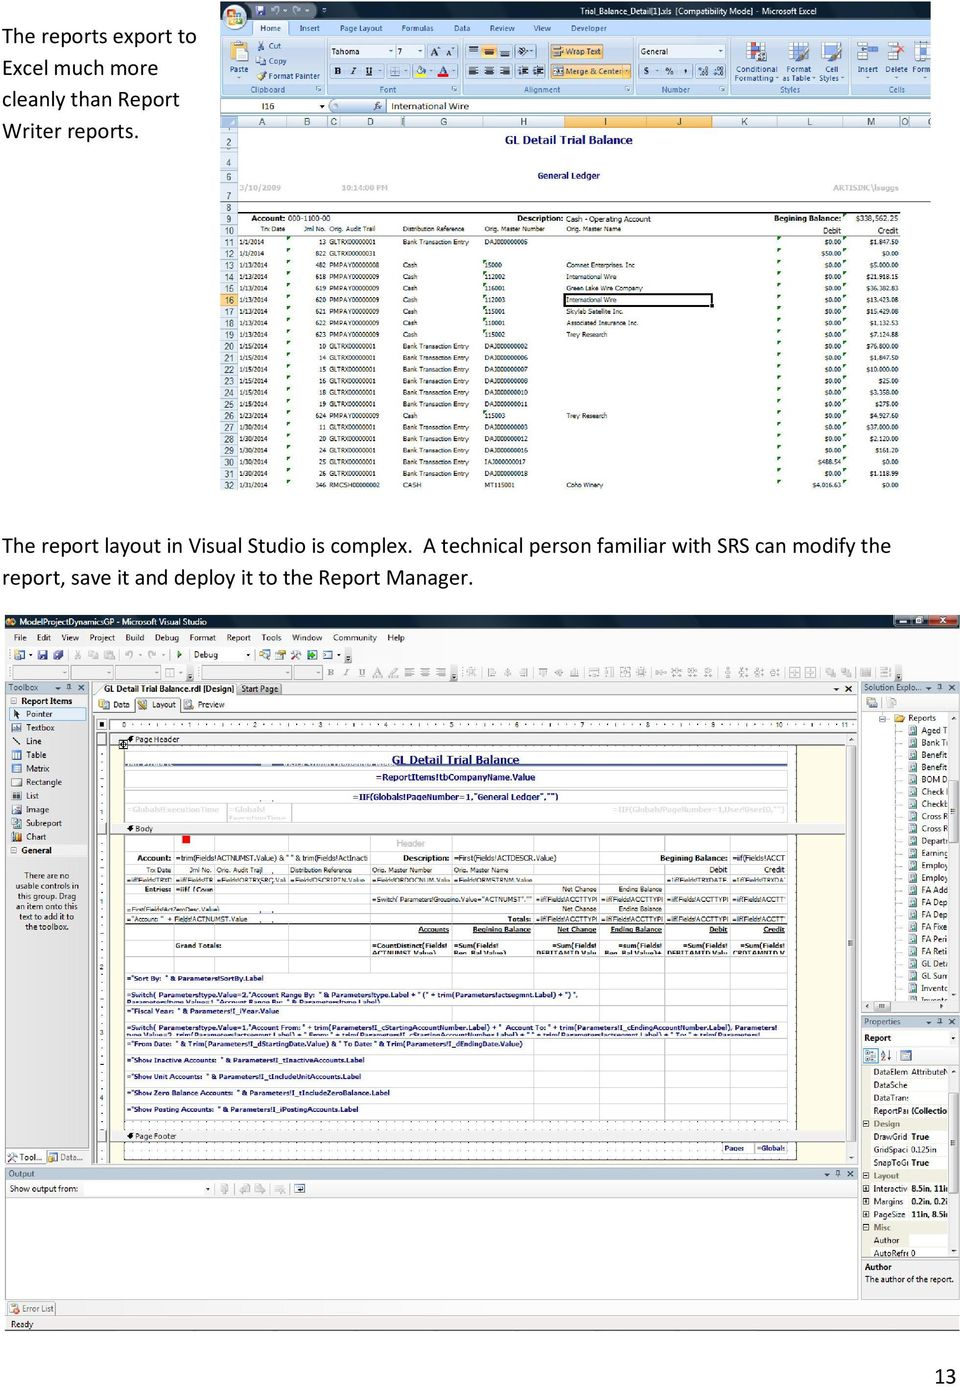 The report layout in Visual Studio is complex.